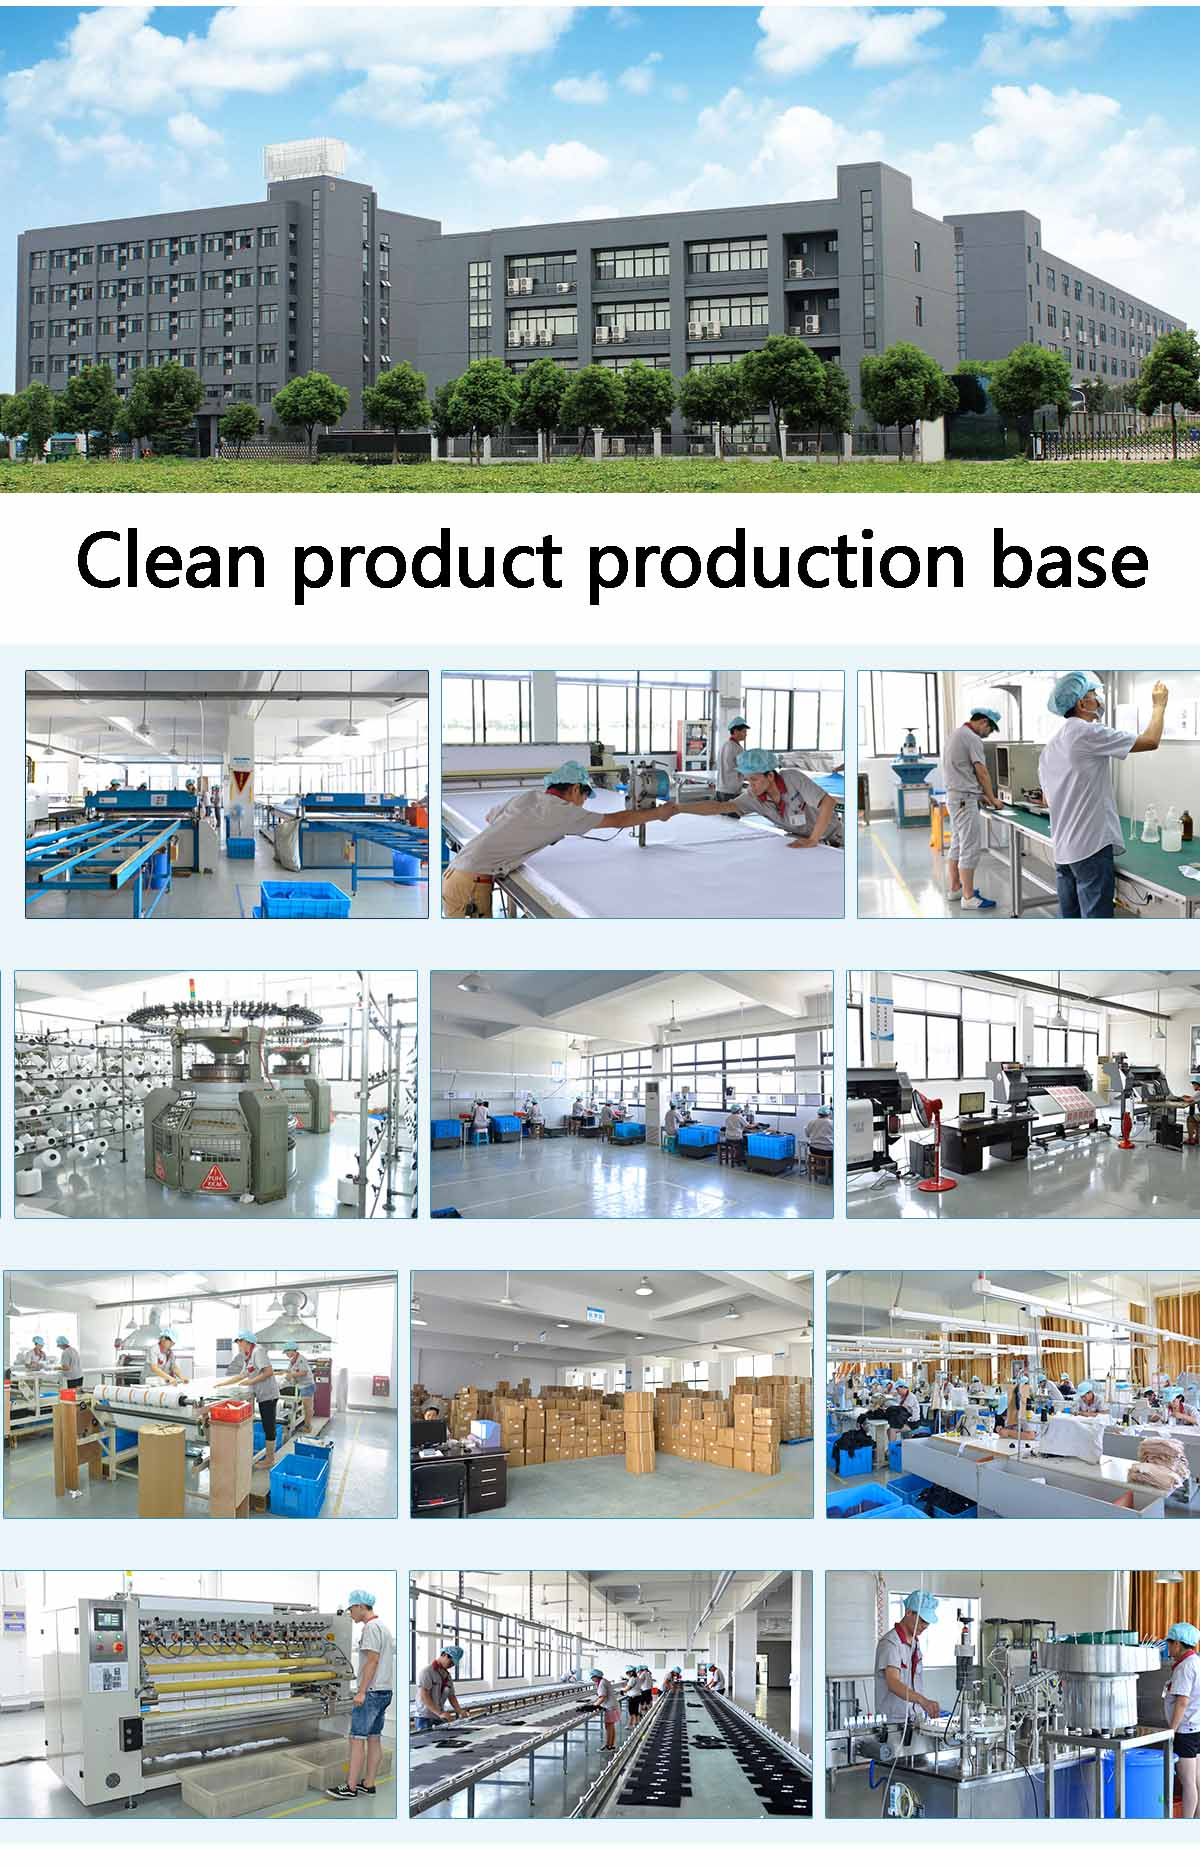 Clean product production base